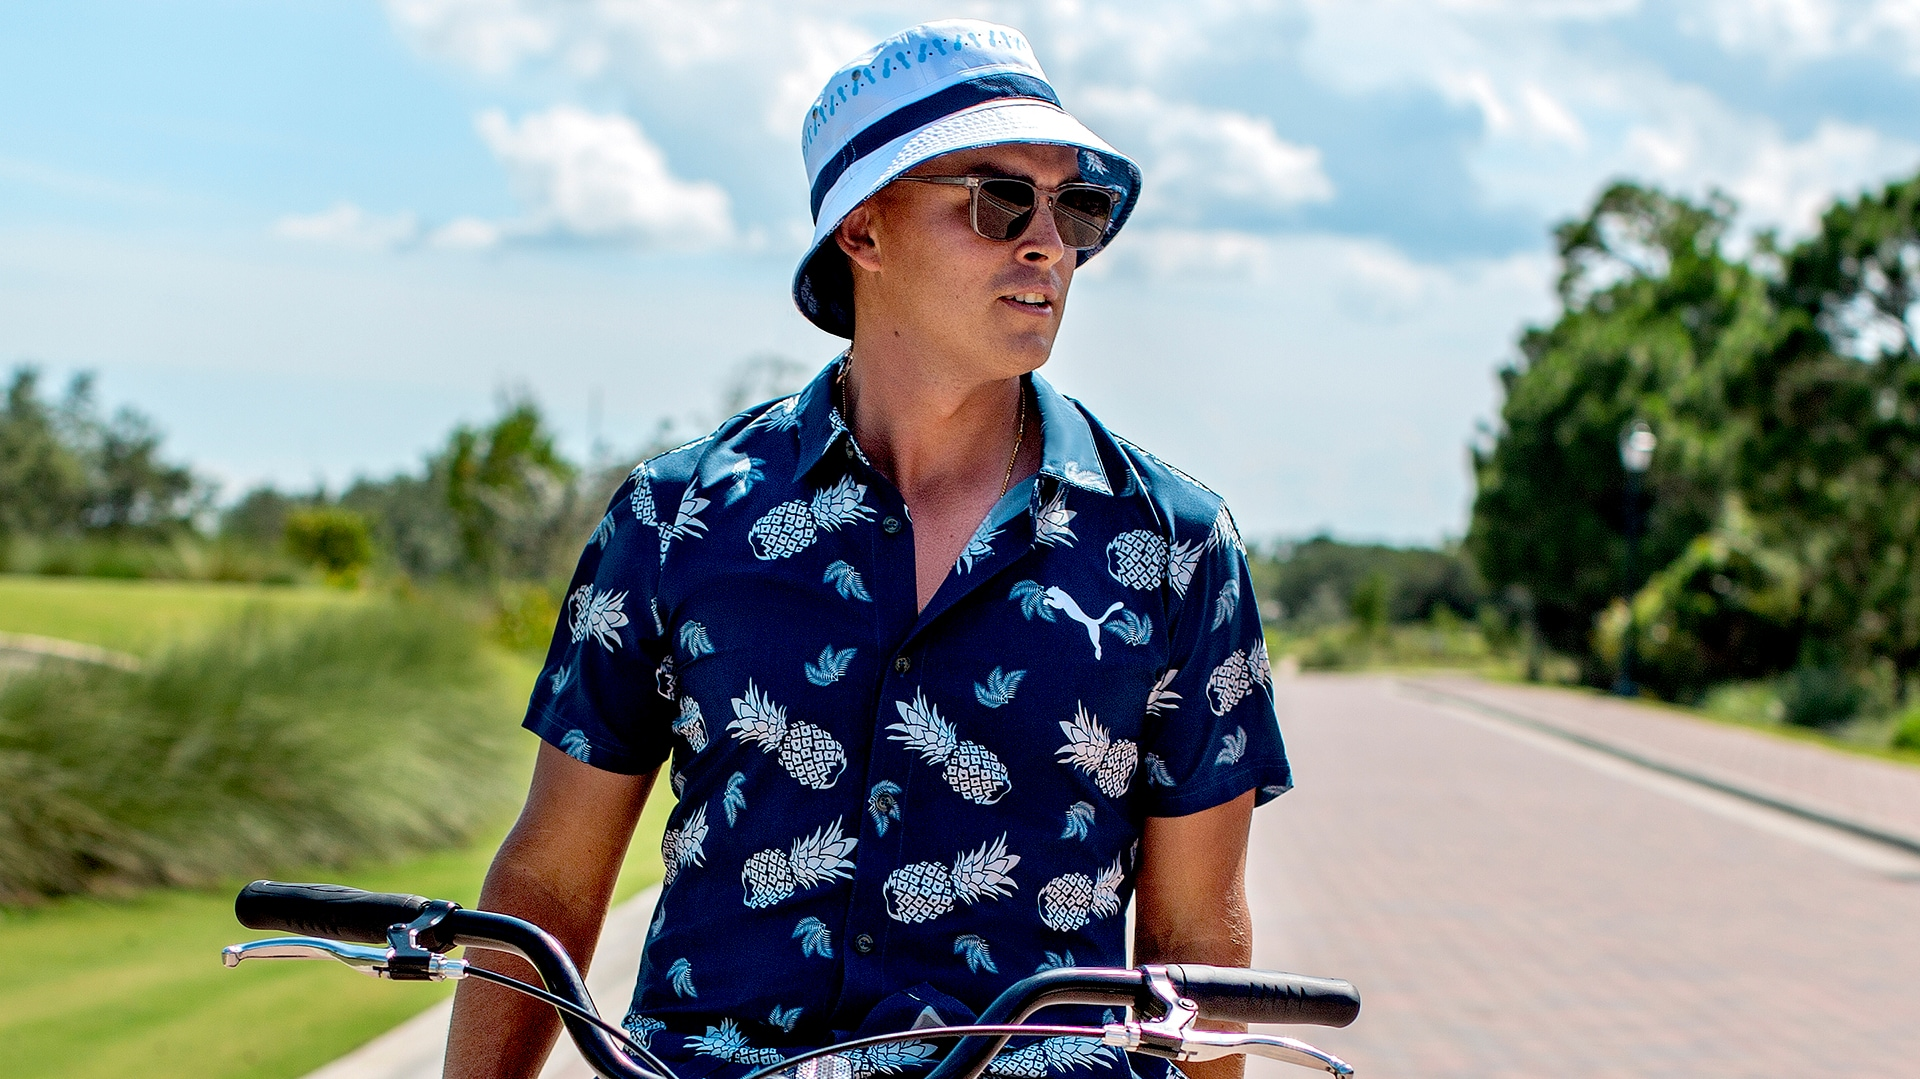 Rickie Fowler Sports Matching Pineapple Print Outfit Bucket Hat Golf Channel